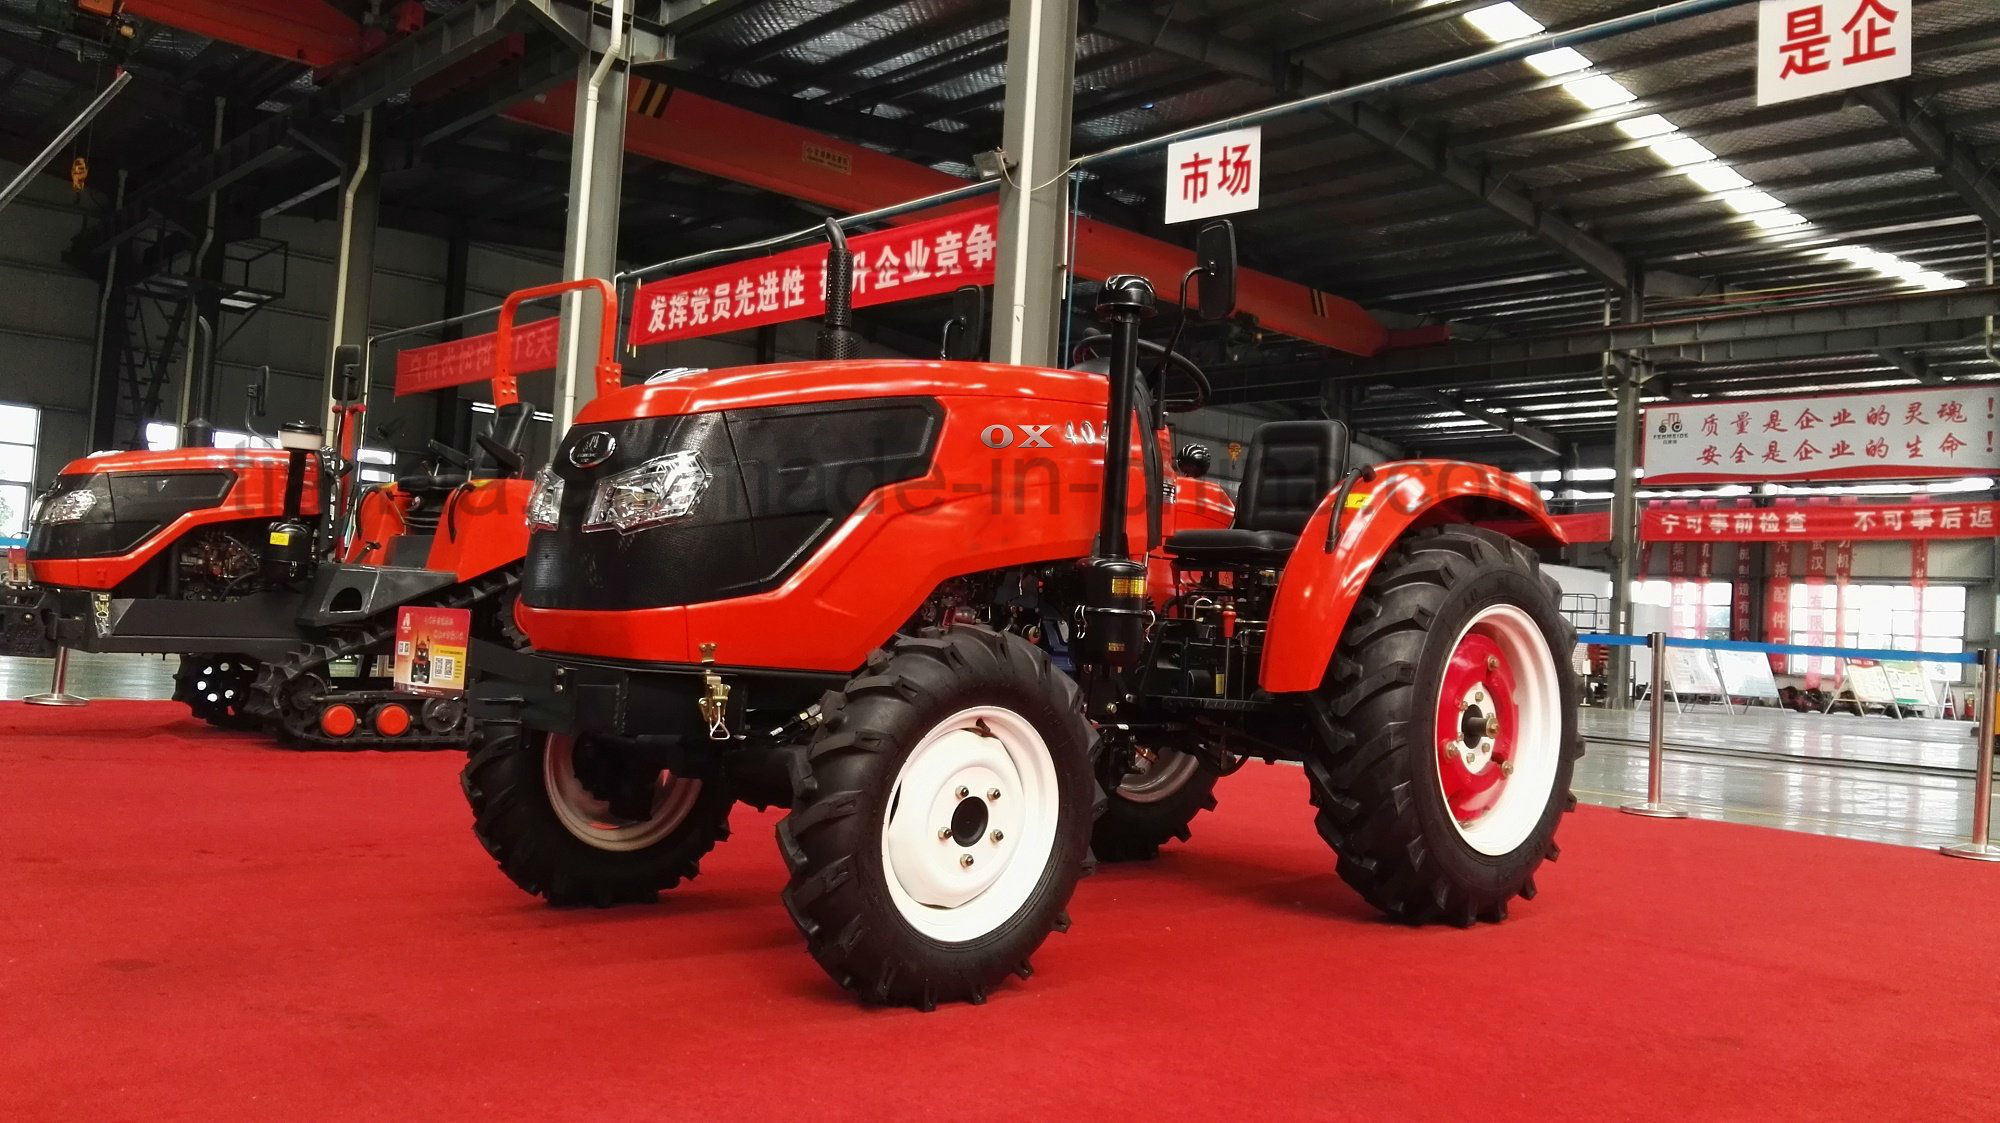 New 45HP Four-Wheel Driving Wheel Tractor with Diesel Engine of Kubota Type (OX454)